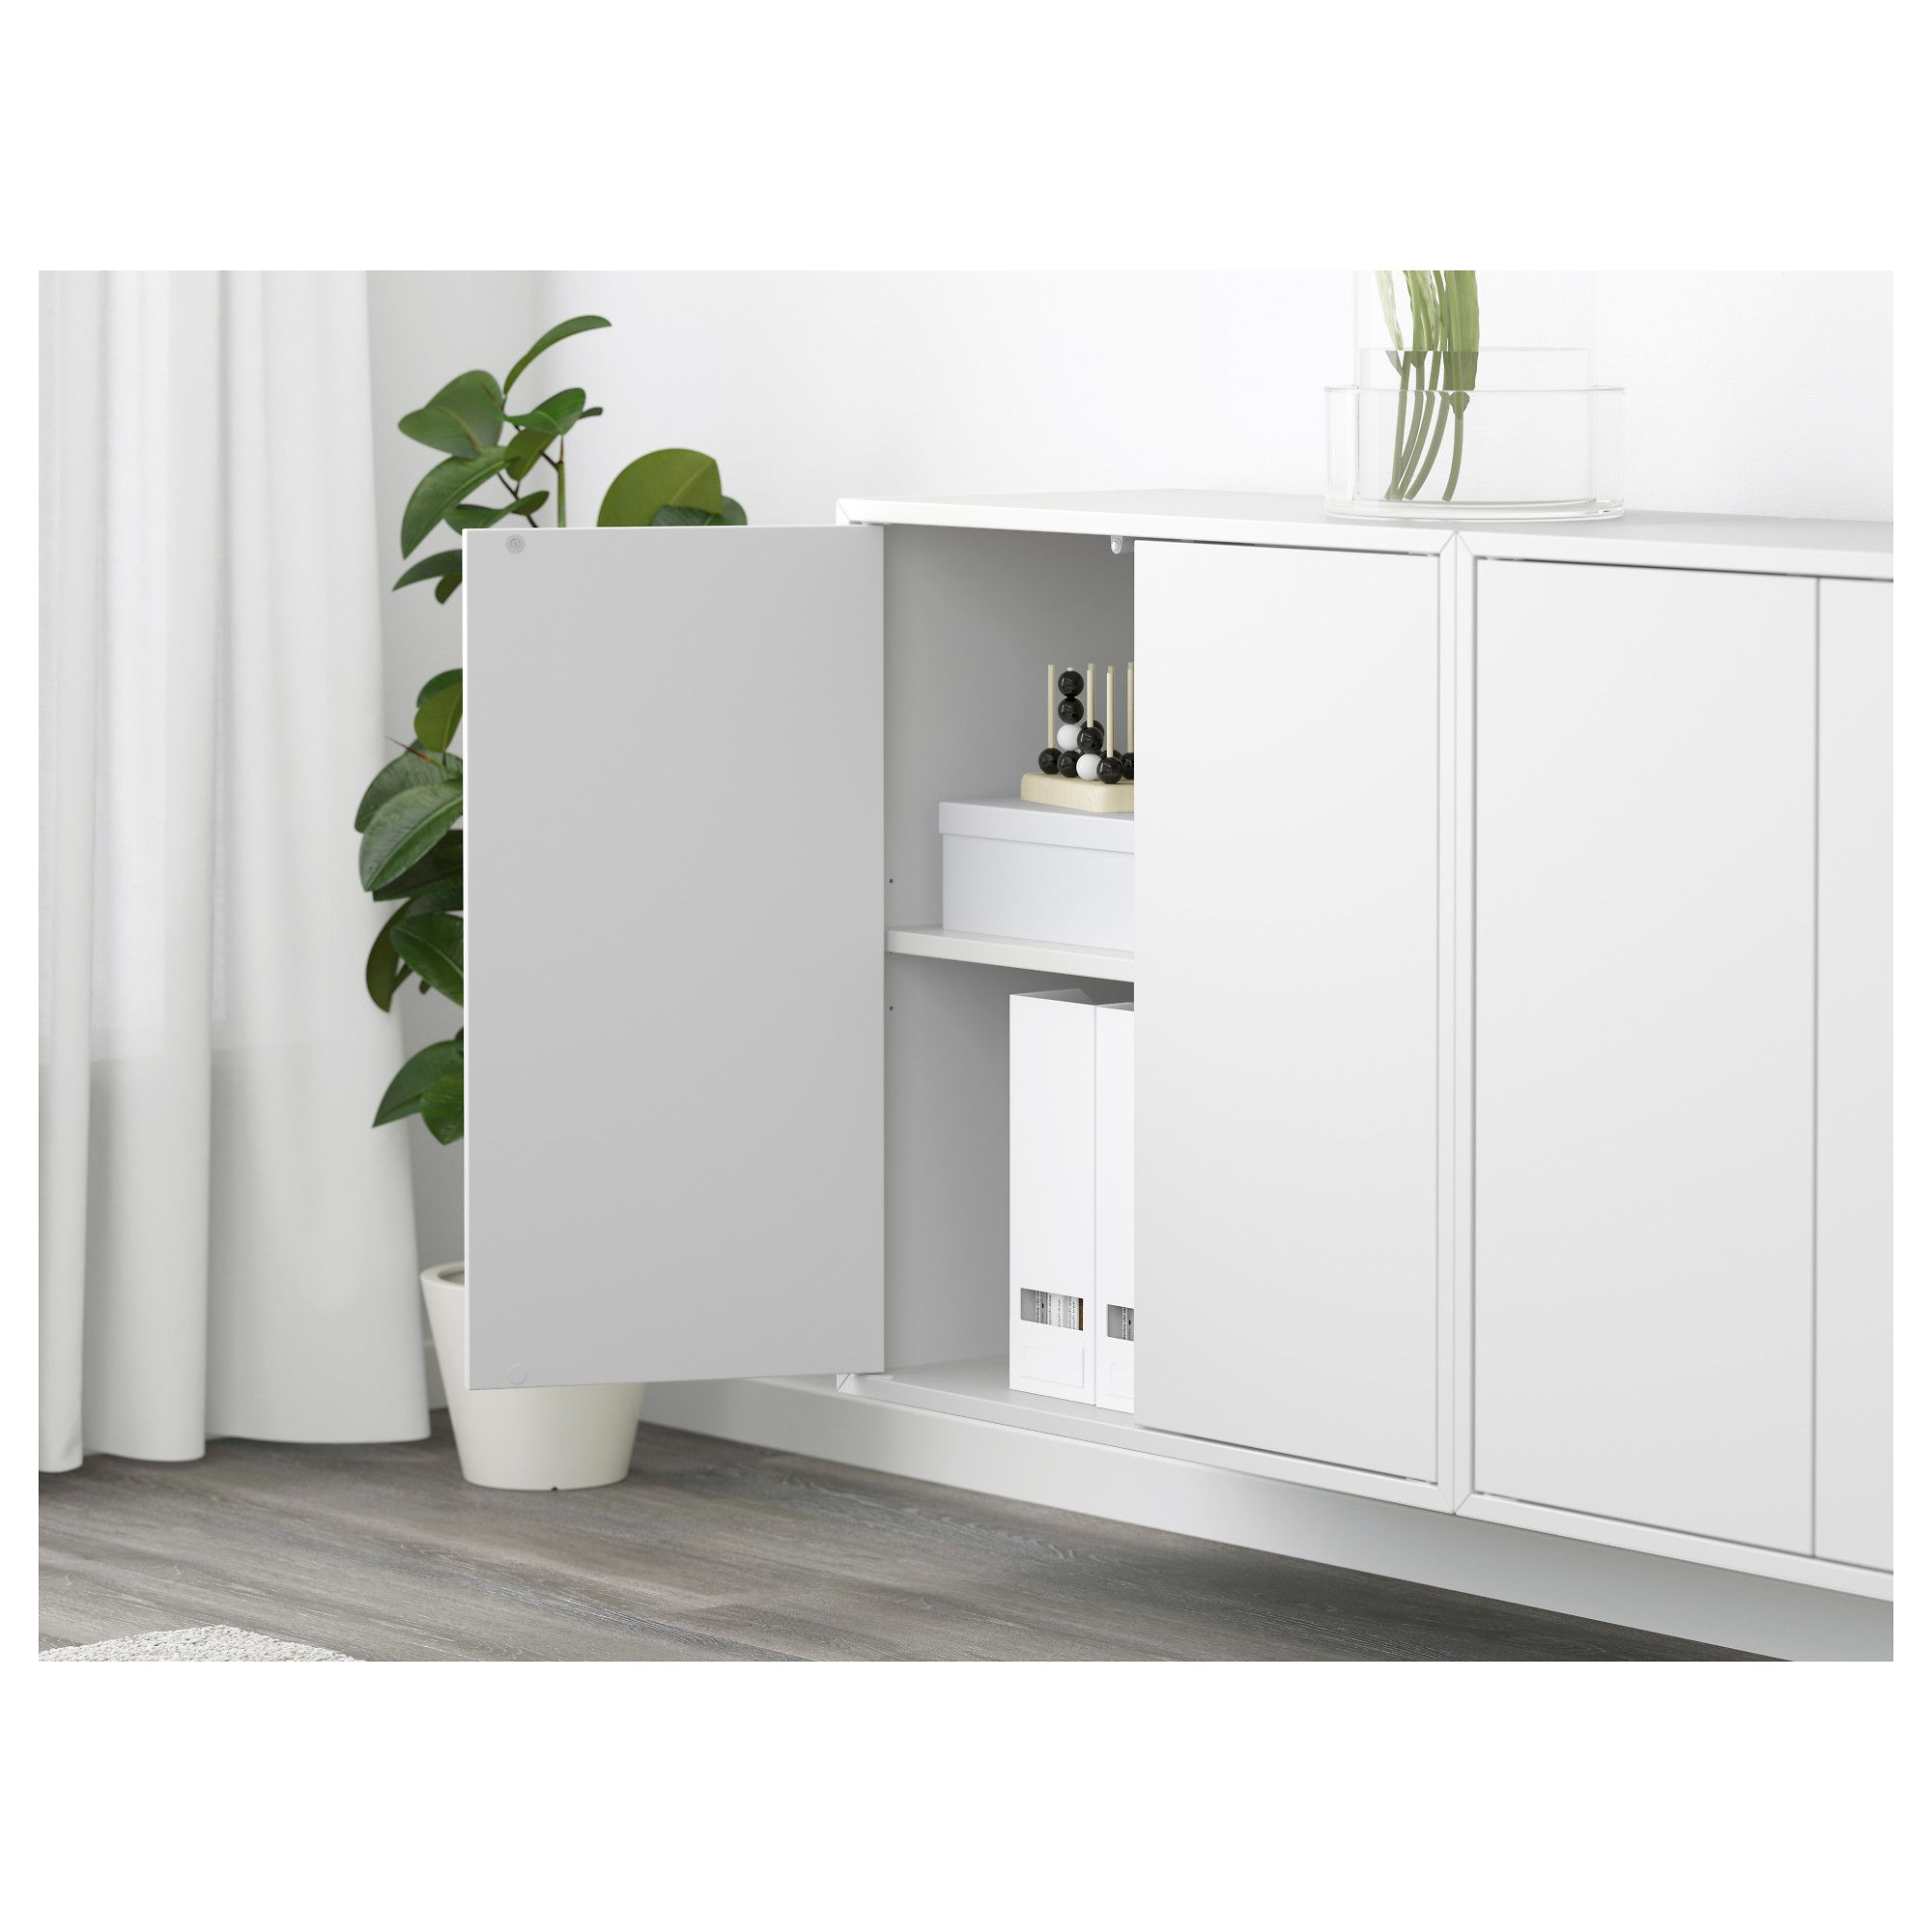 Best Ikea Eket Wall Mounted Cabinet Combination White 400 x 300